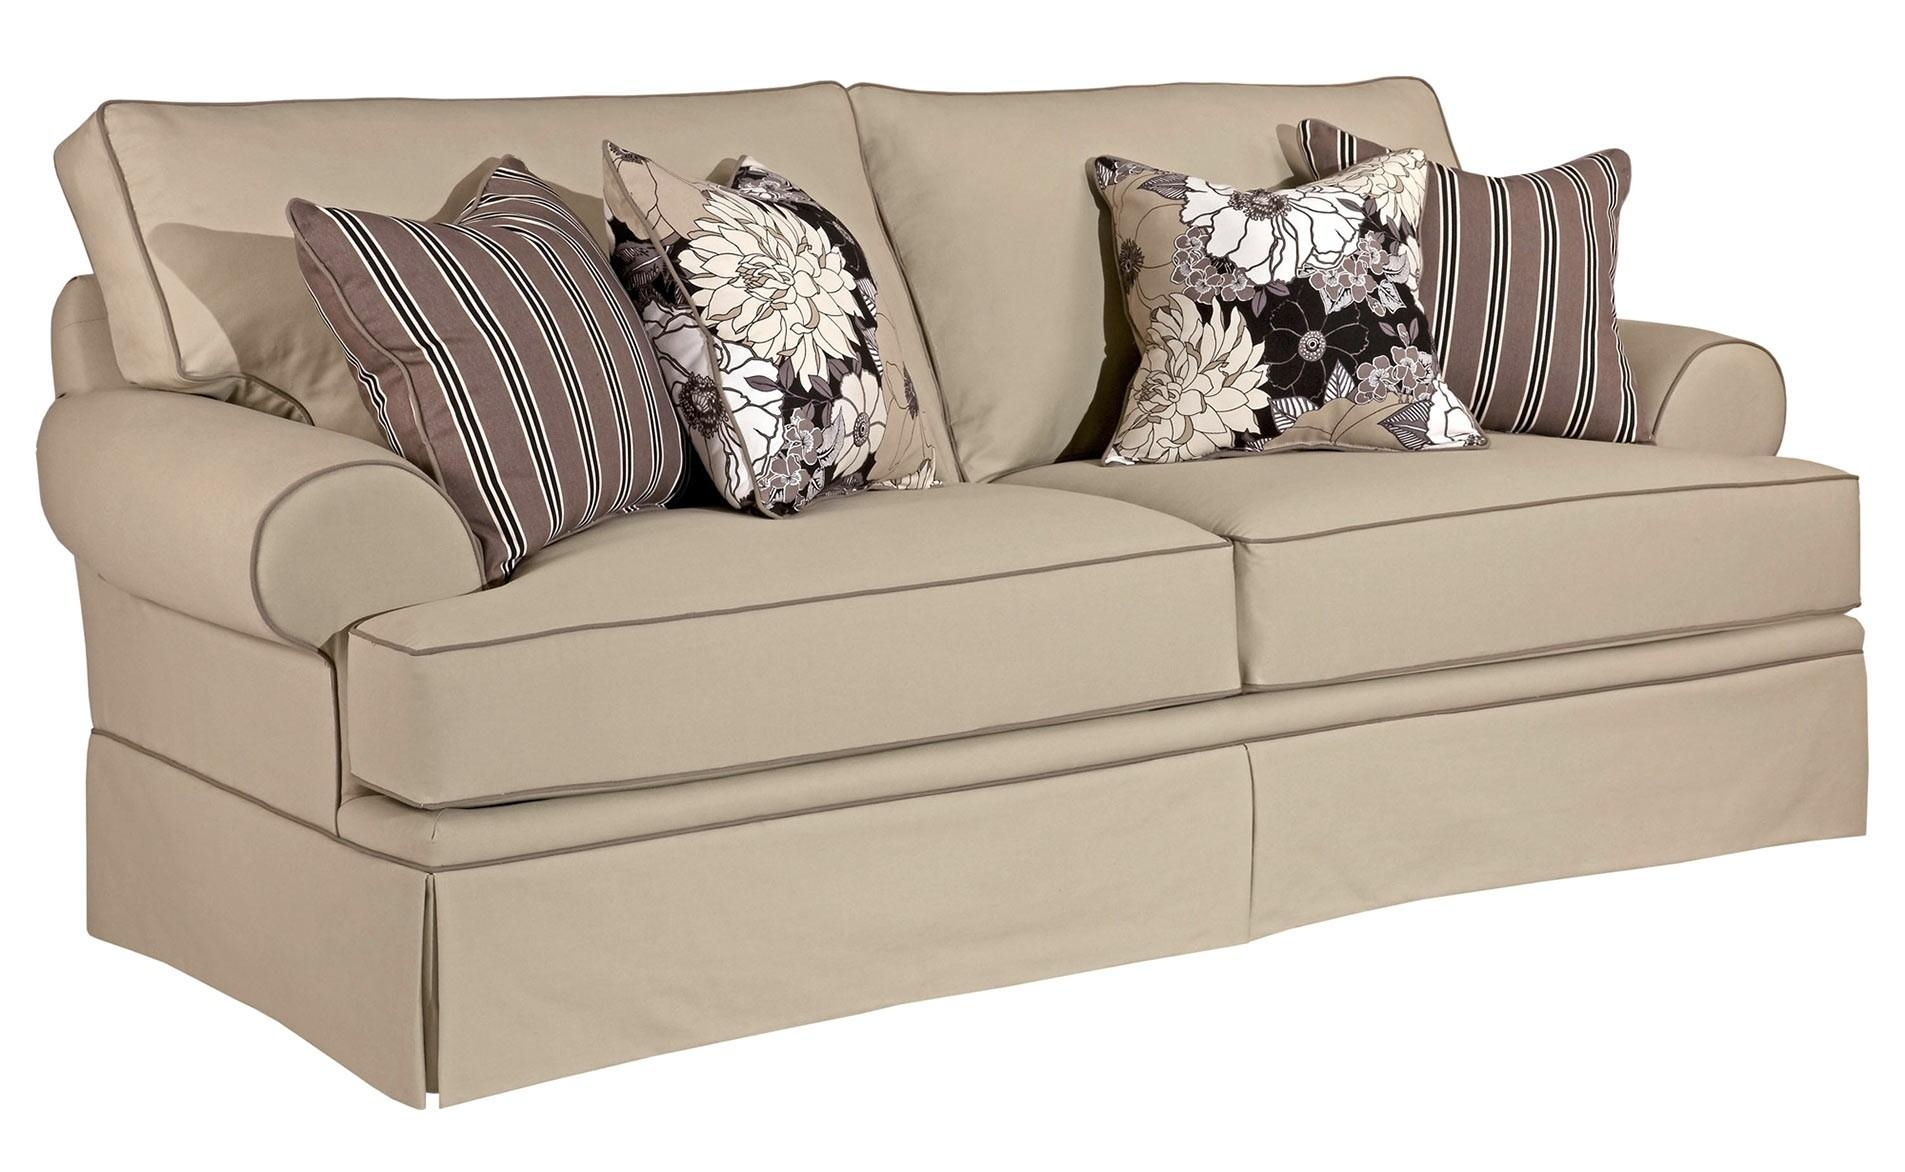 cindy crawford sleeper sofa bed on gumtree perth 20 collection of sofas ideas